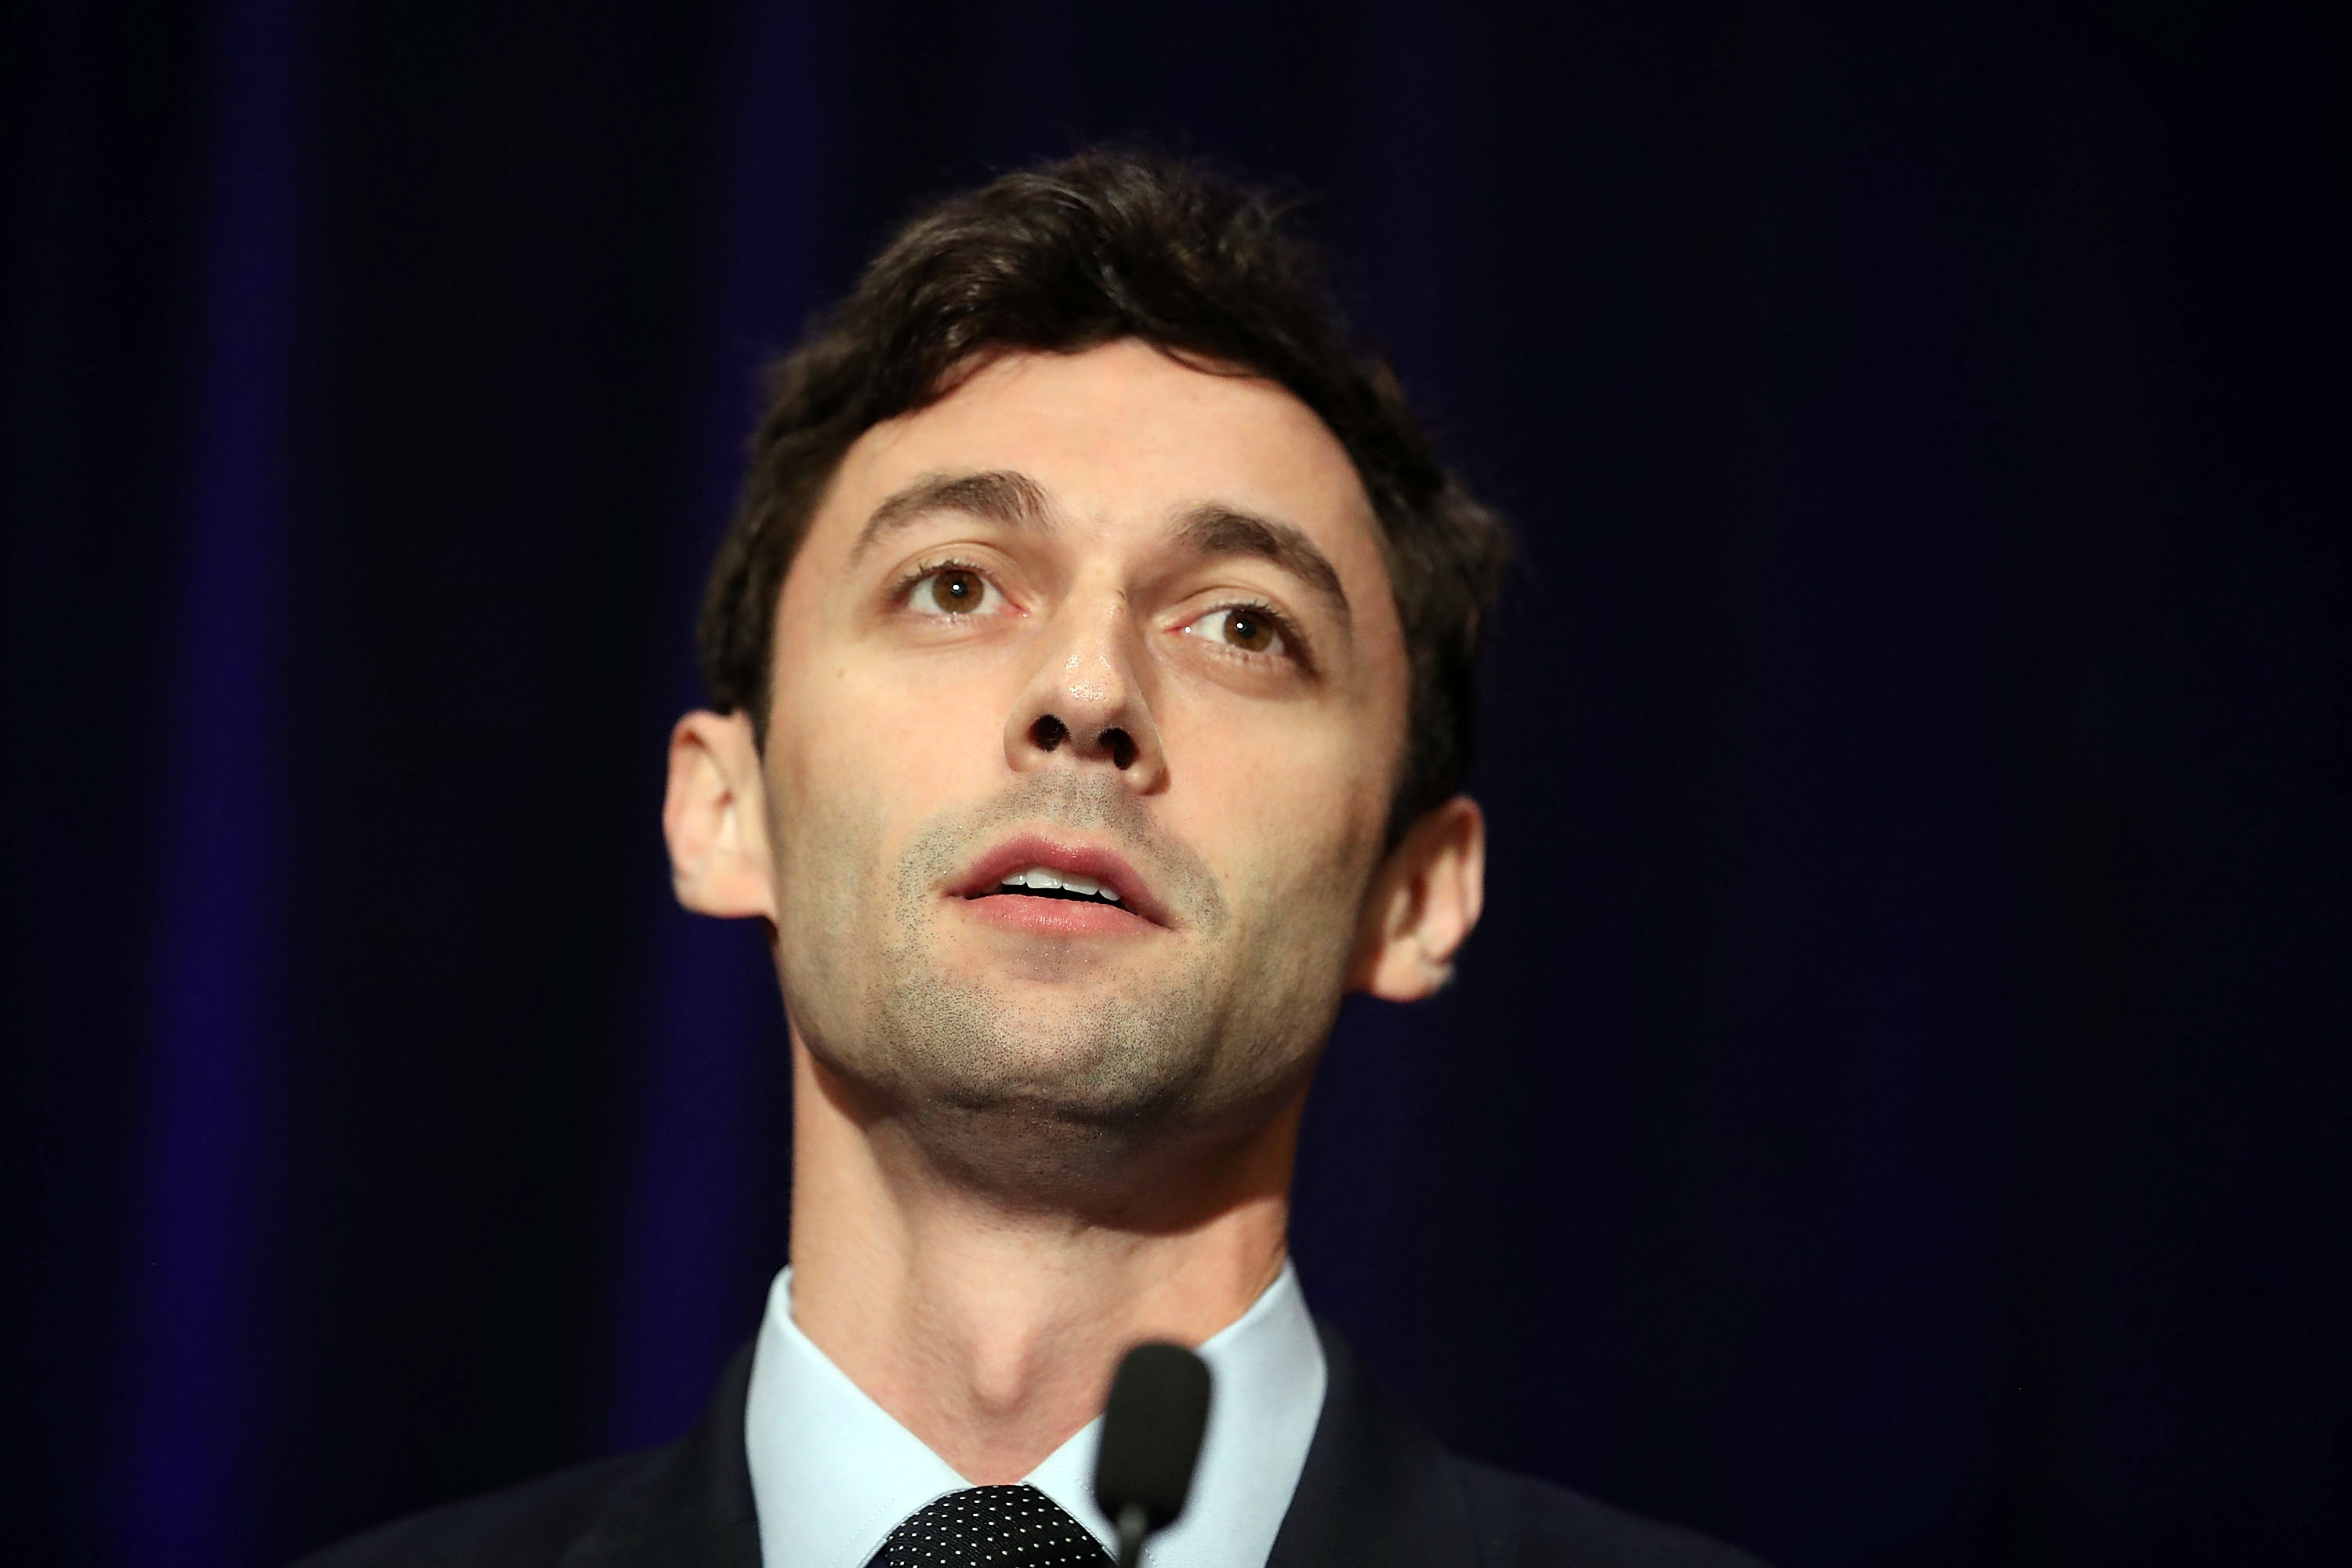 Georgia Democrat puts Donald Trump's popularity to the test in Congress vote